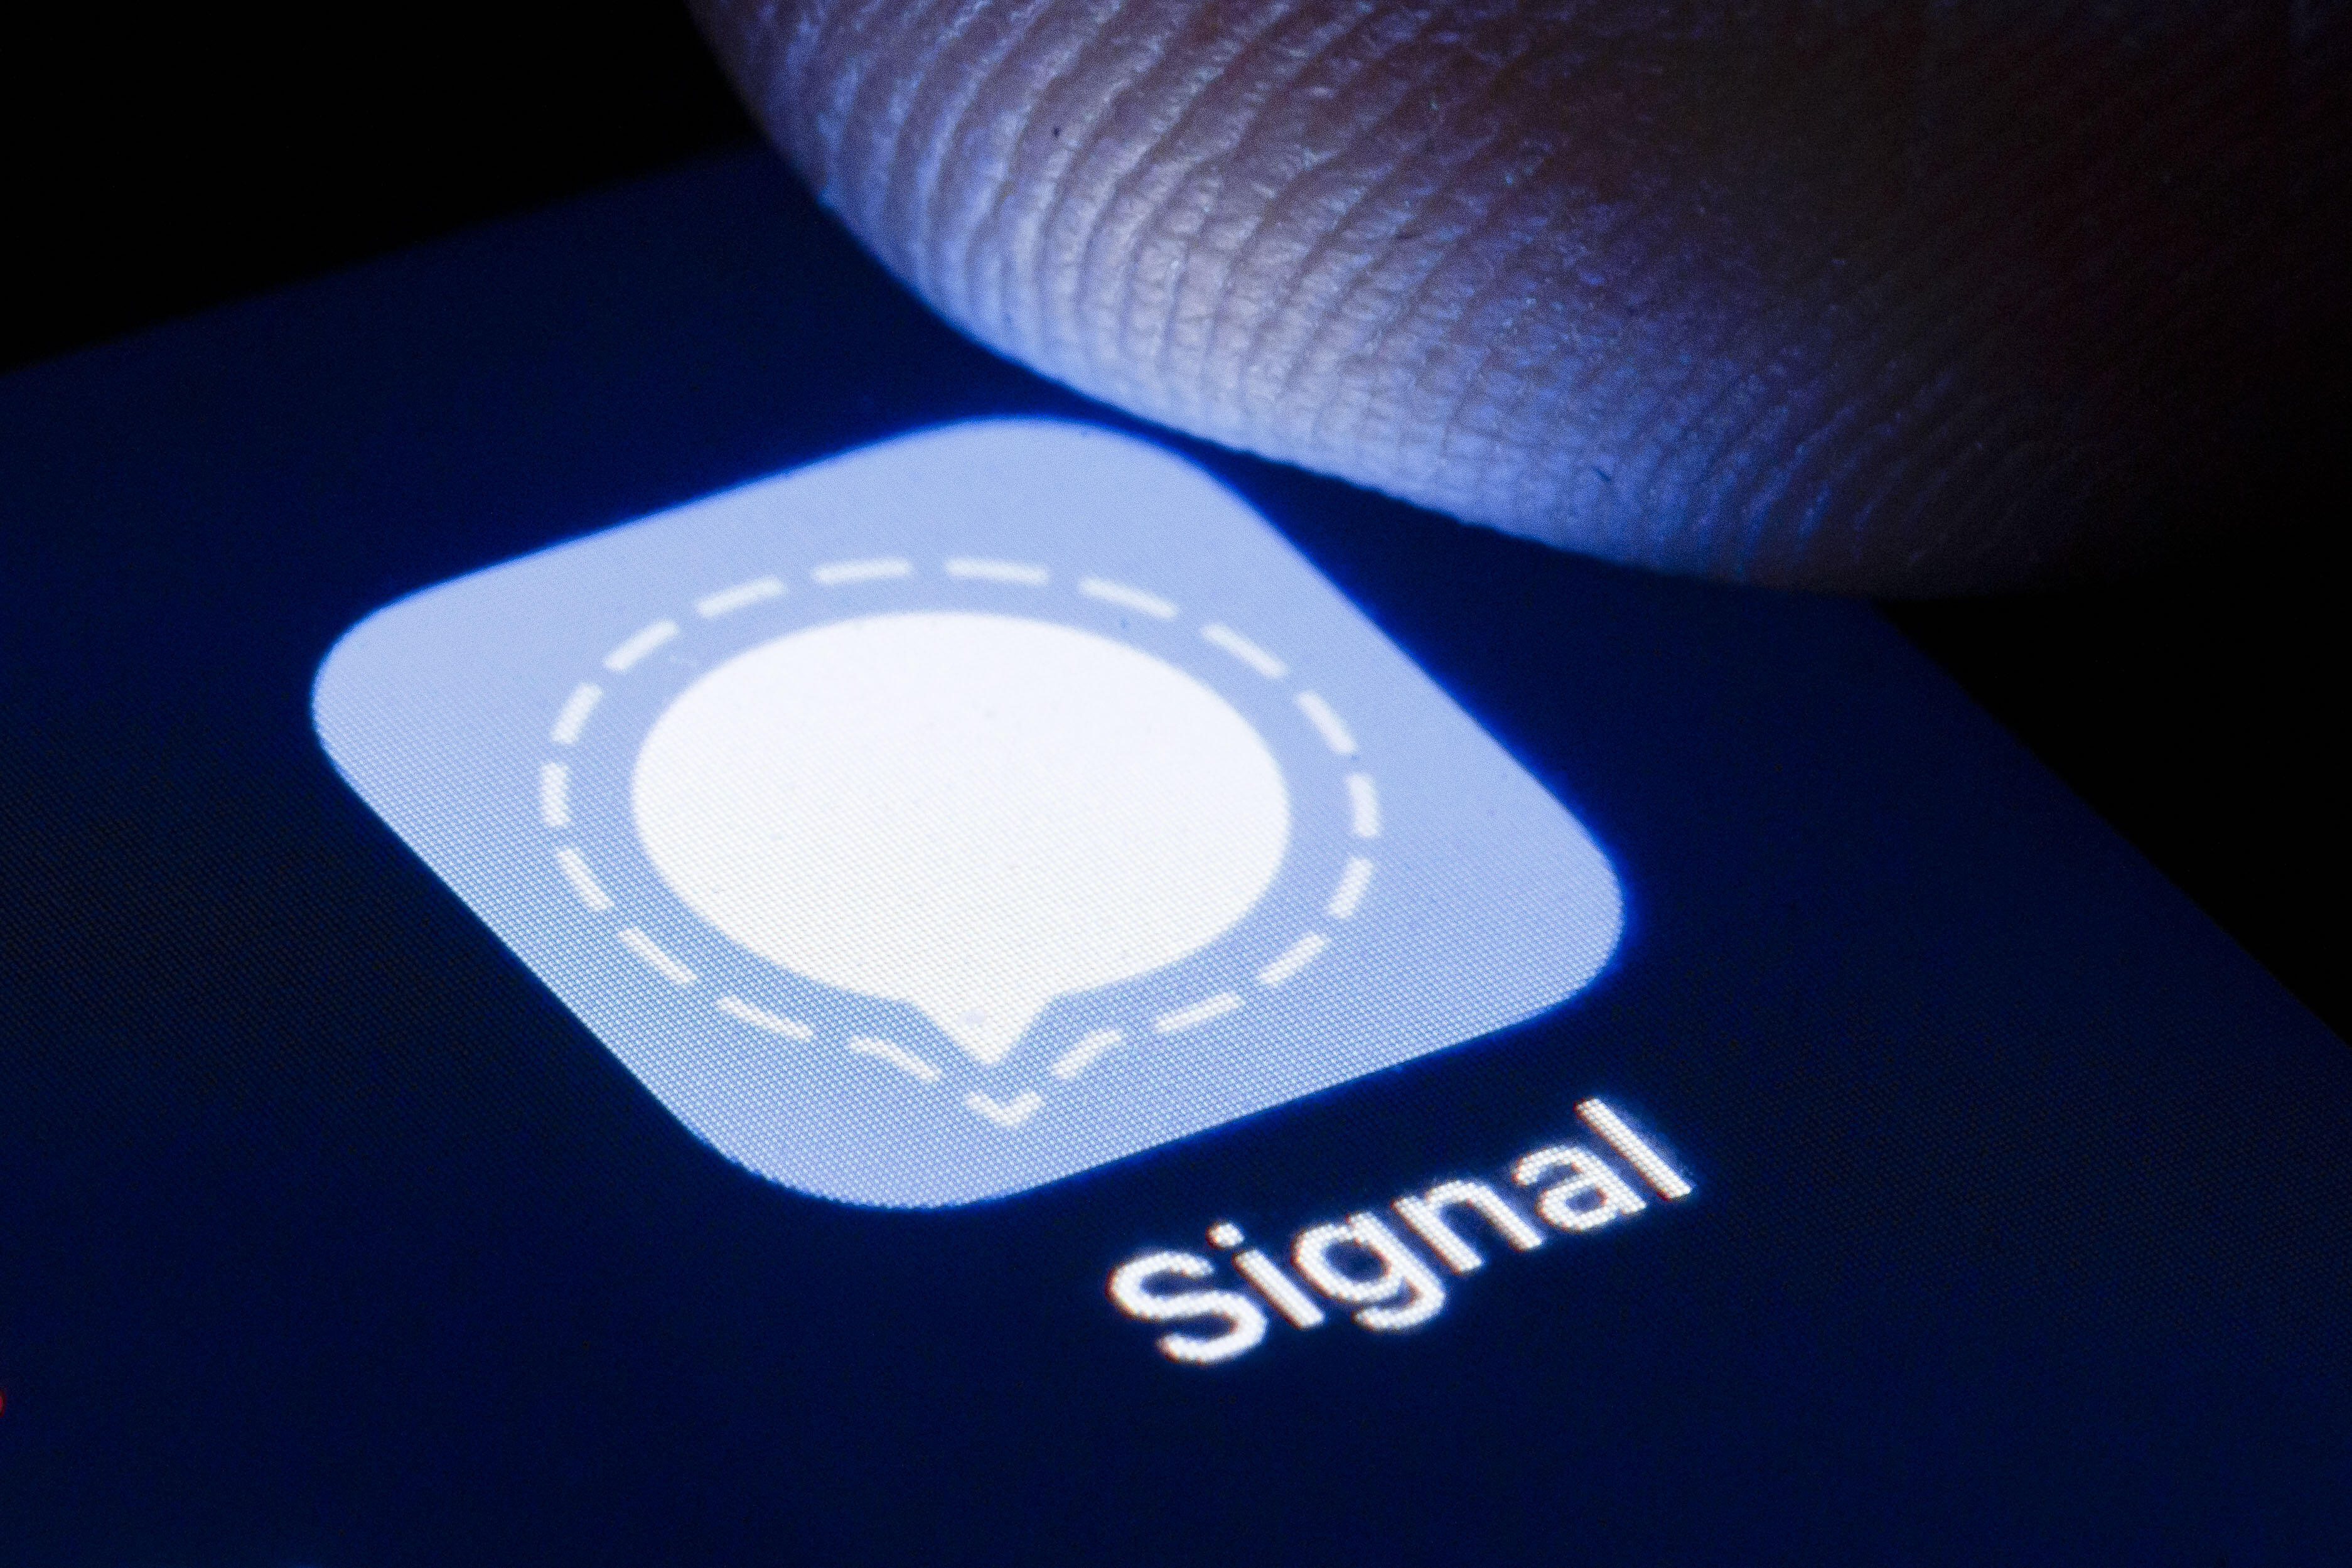 A finger hovers over a phone screen where the icon for the Signal encrypted messenger app is displayed.